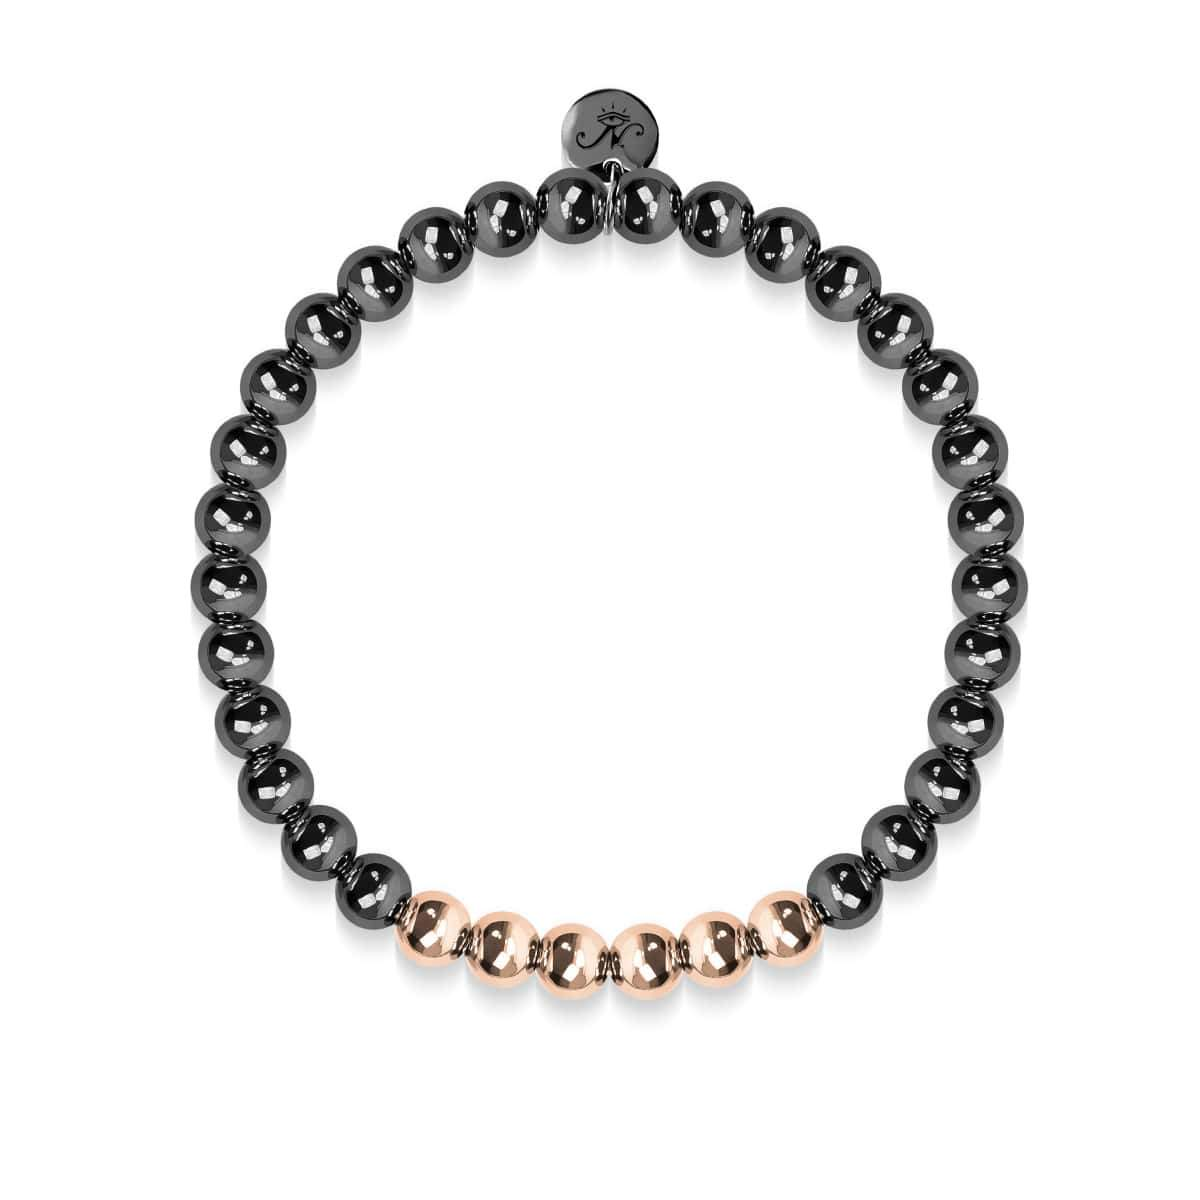 Illuminated | Gunmetal | 18k Rose Gold | Expression Bracelet